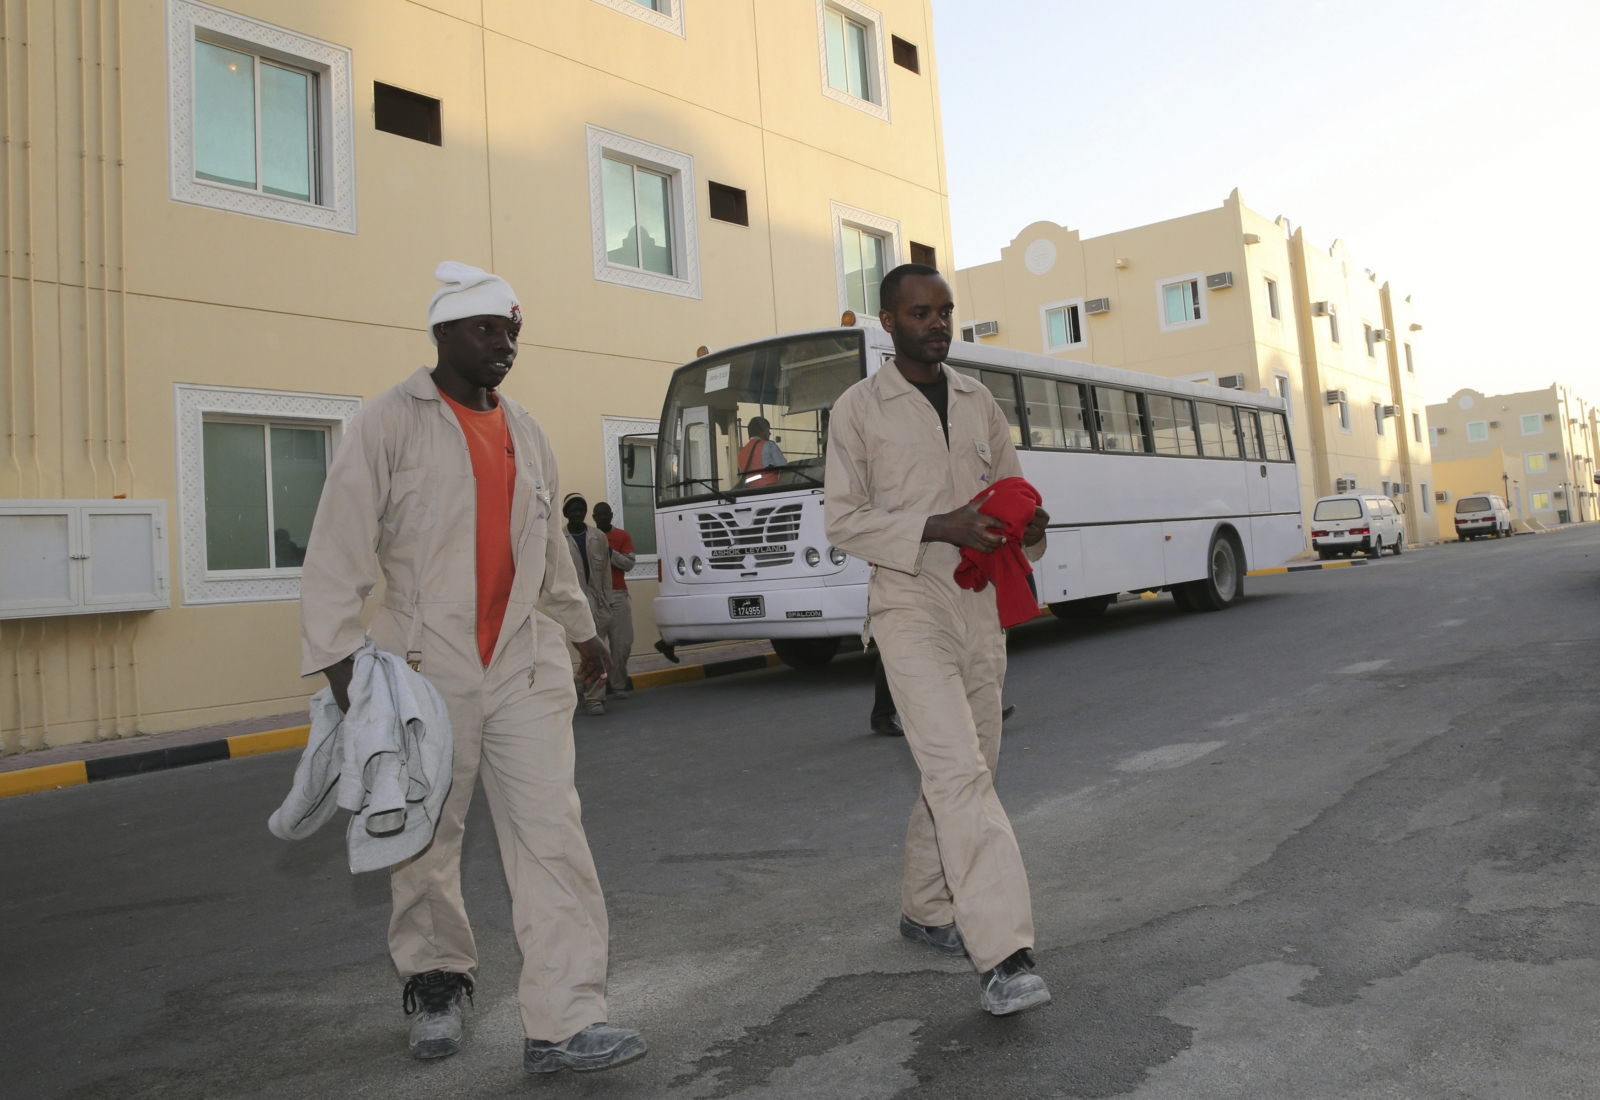 Labourers, who are working on the Qatar 2022 World Cup project, arrive at their accommodation in Doha